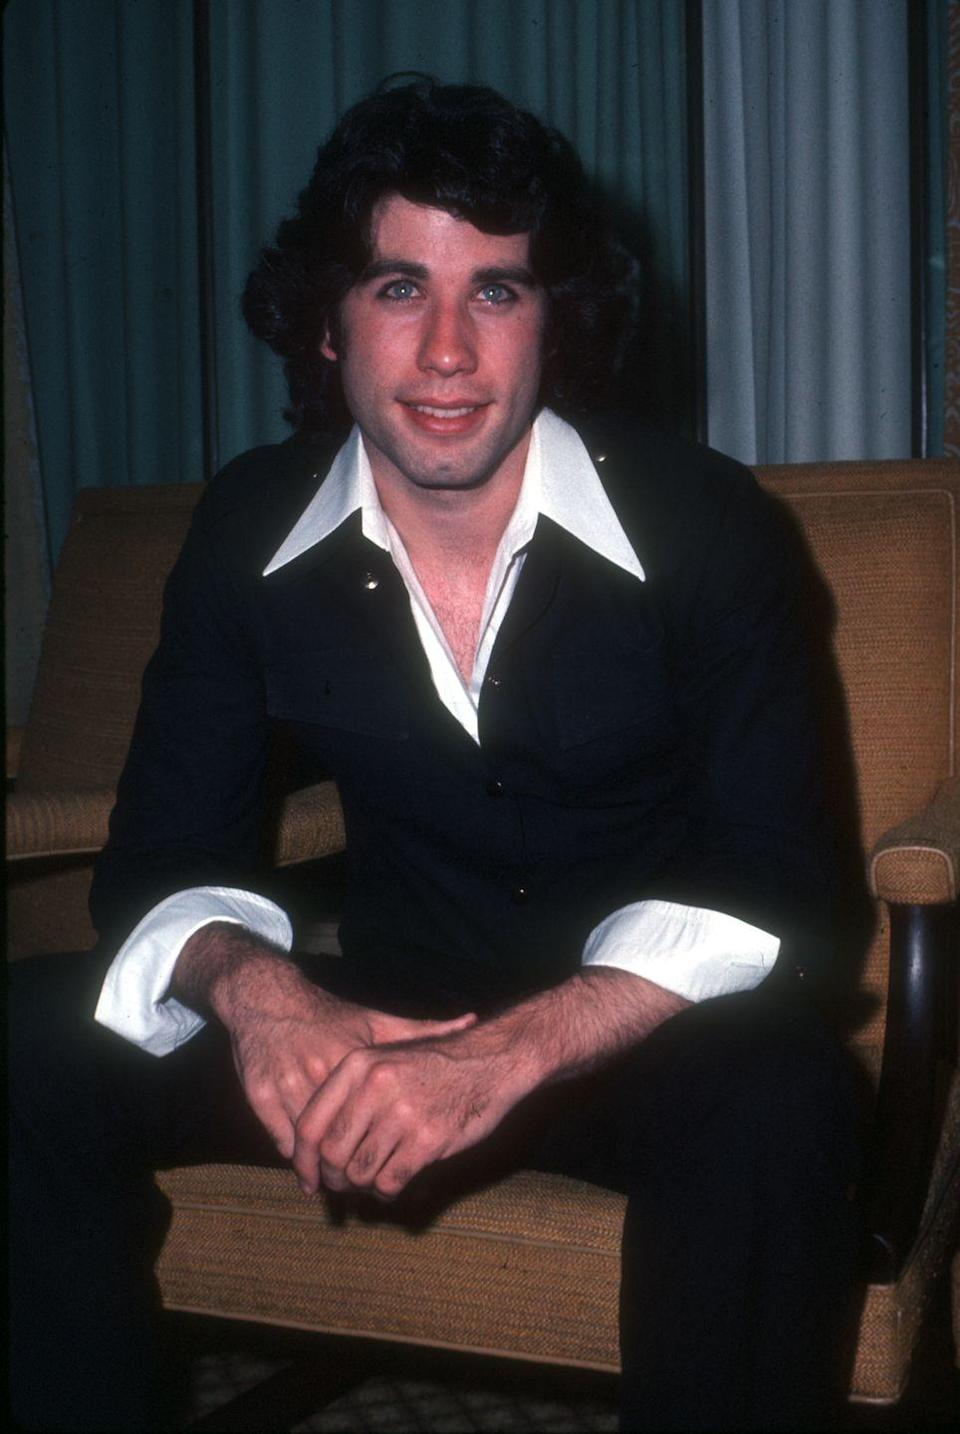 "<p>First movie: After a handful of television roles, John Travola's first movie role was in the 1975 film <a href=""https://www.imdb.com/title/tt0072869/"" rel=""nofollow noopener"" target=""_blank"" data-ylk=""slk:The Devil's Rain"" class=""link rapid-noclick-resp"">The Devil's Rain</a>. A horror film, The Devil's Rain follows the revenge of a deceased satanist cult leader. Travolta was 21 years old when the film was released.</p>"